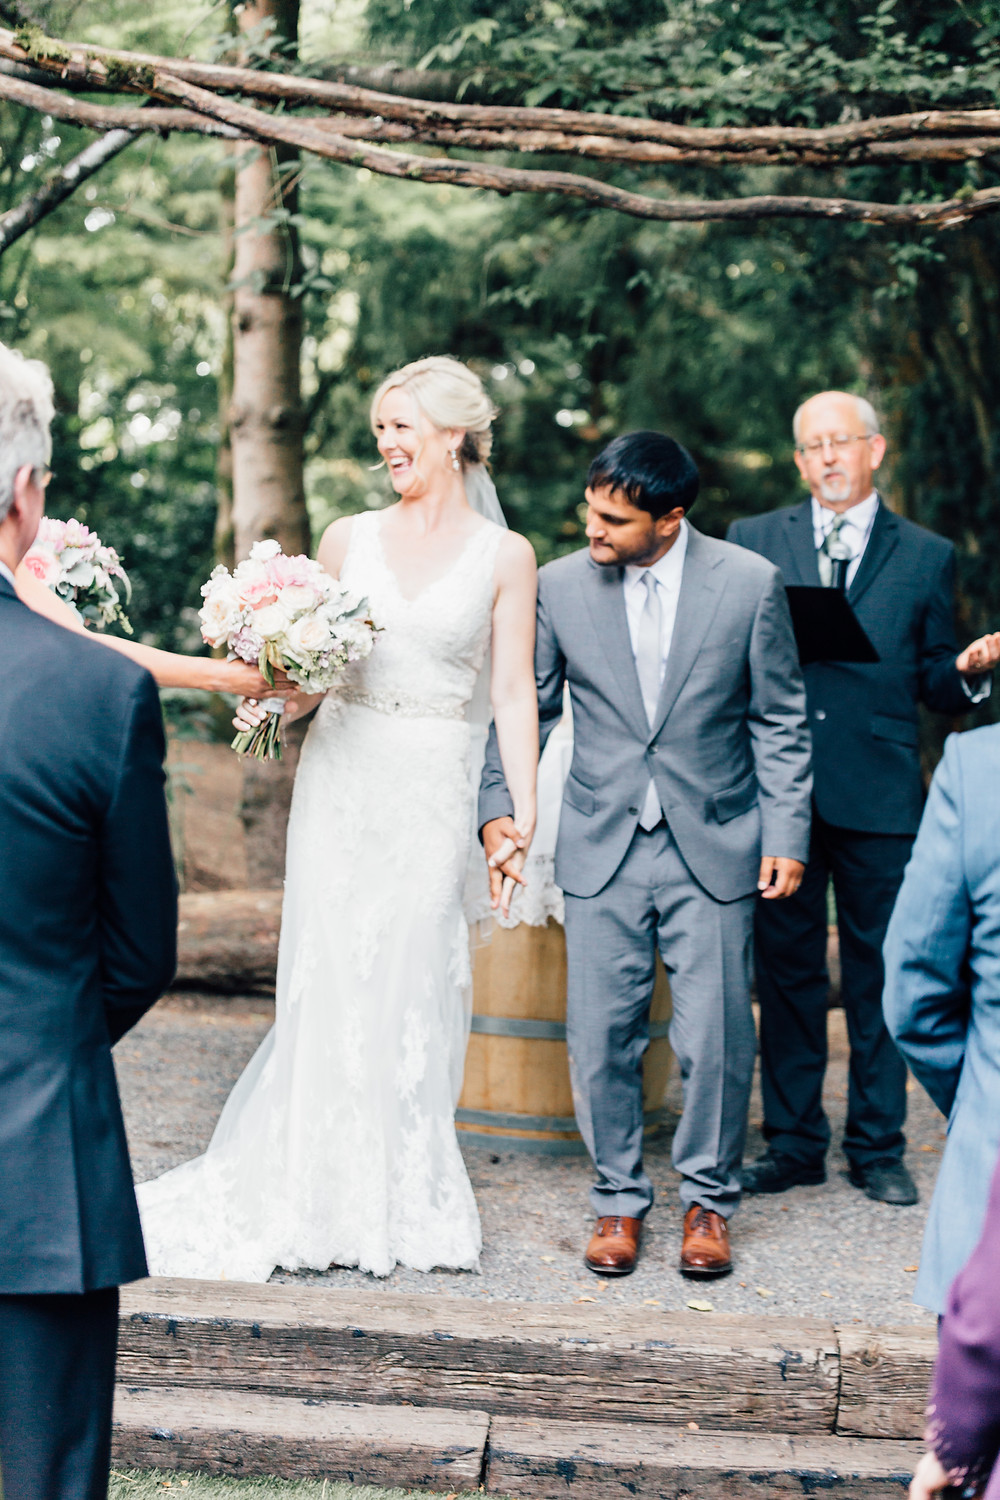 Ceremony JM Cellars Woodinville Winery Wedding